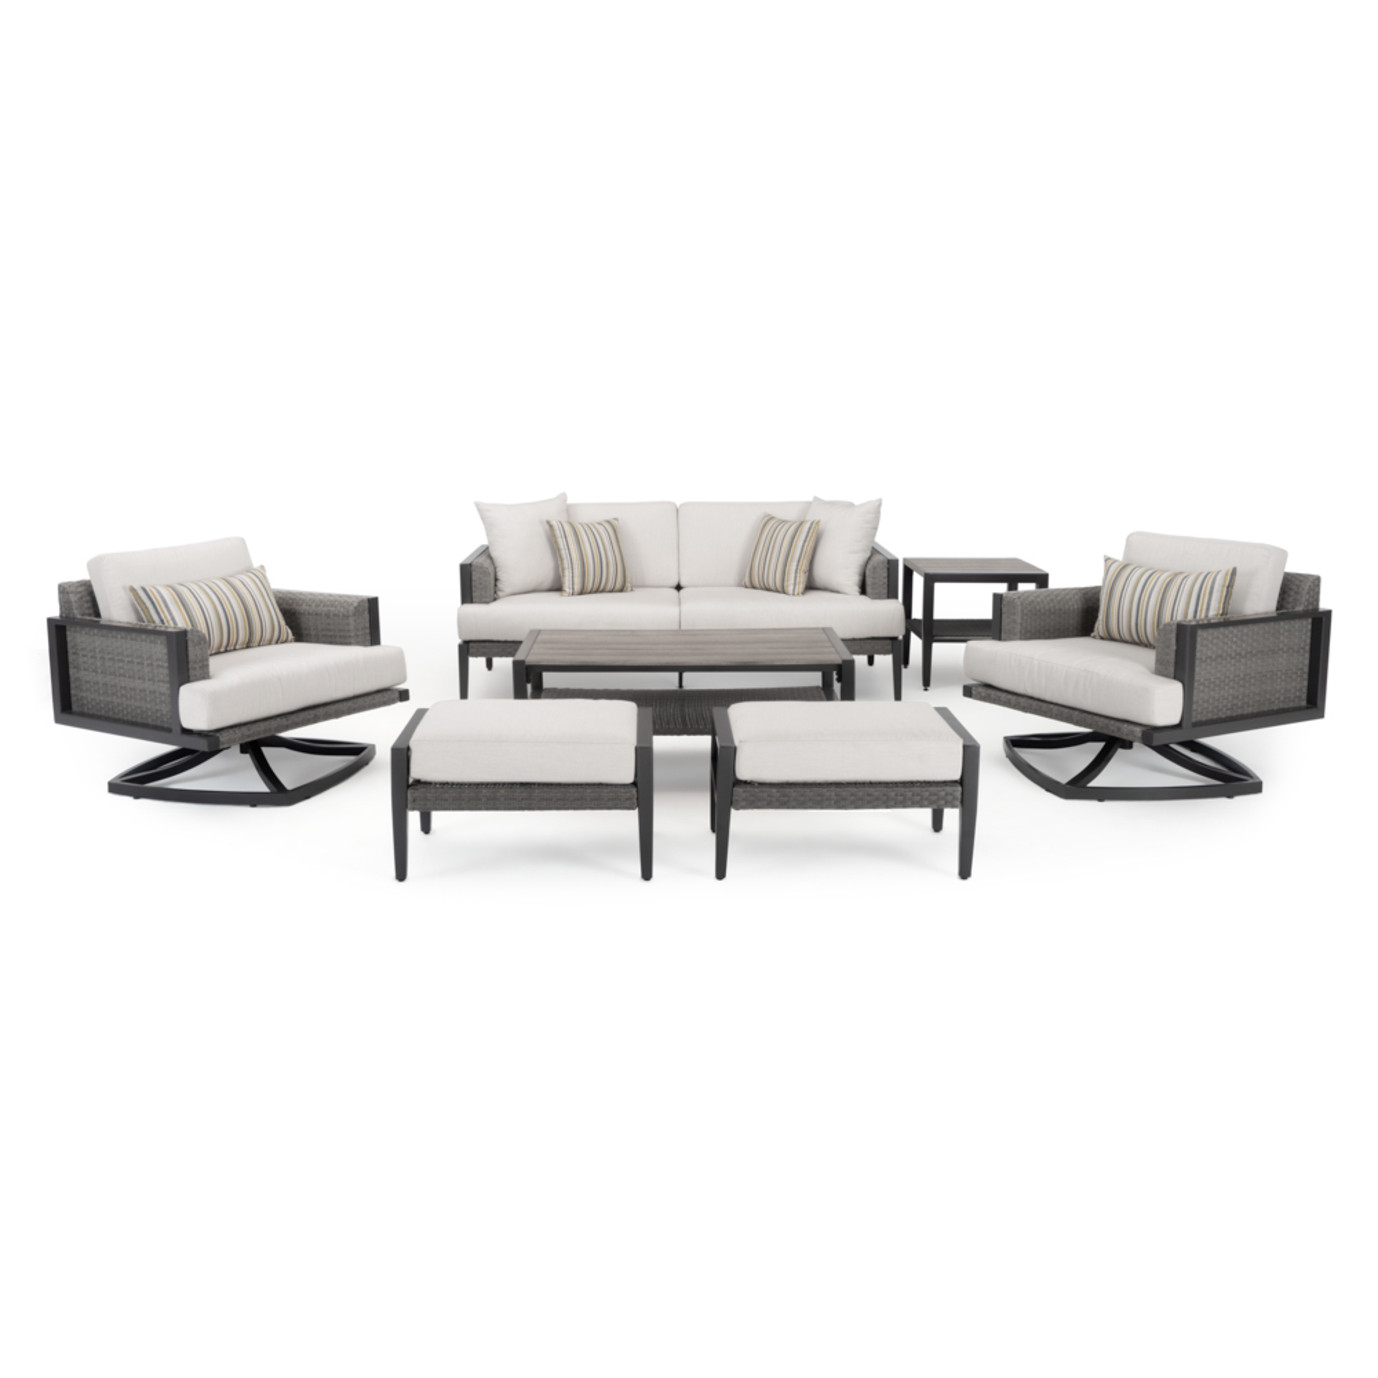 Vistano® 7 Piece Motion Seating Set